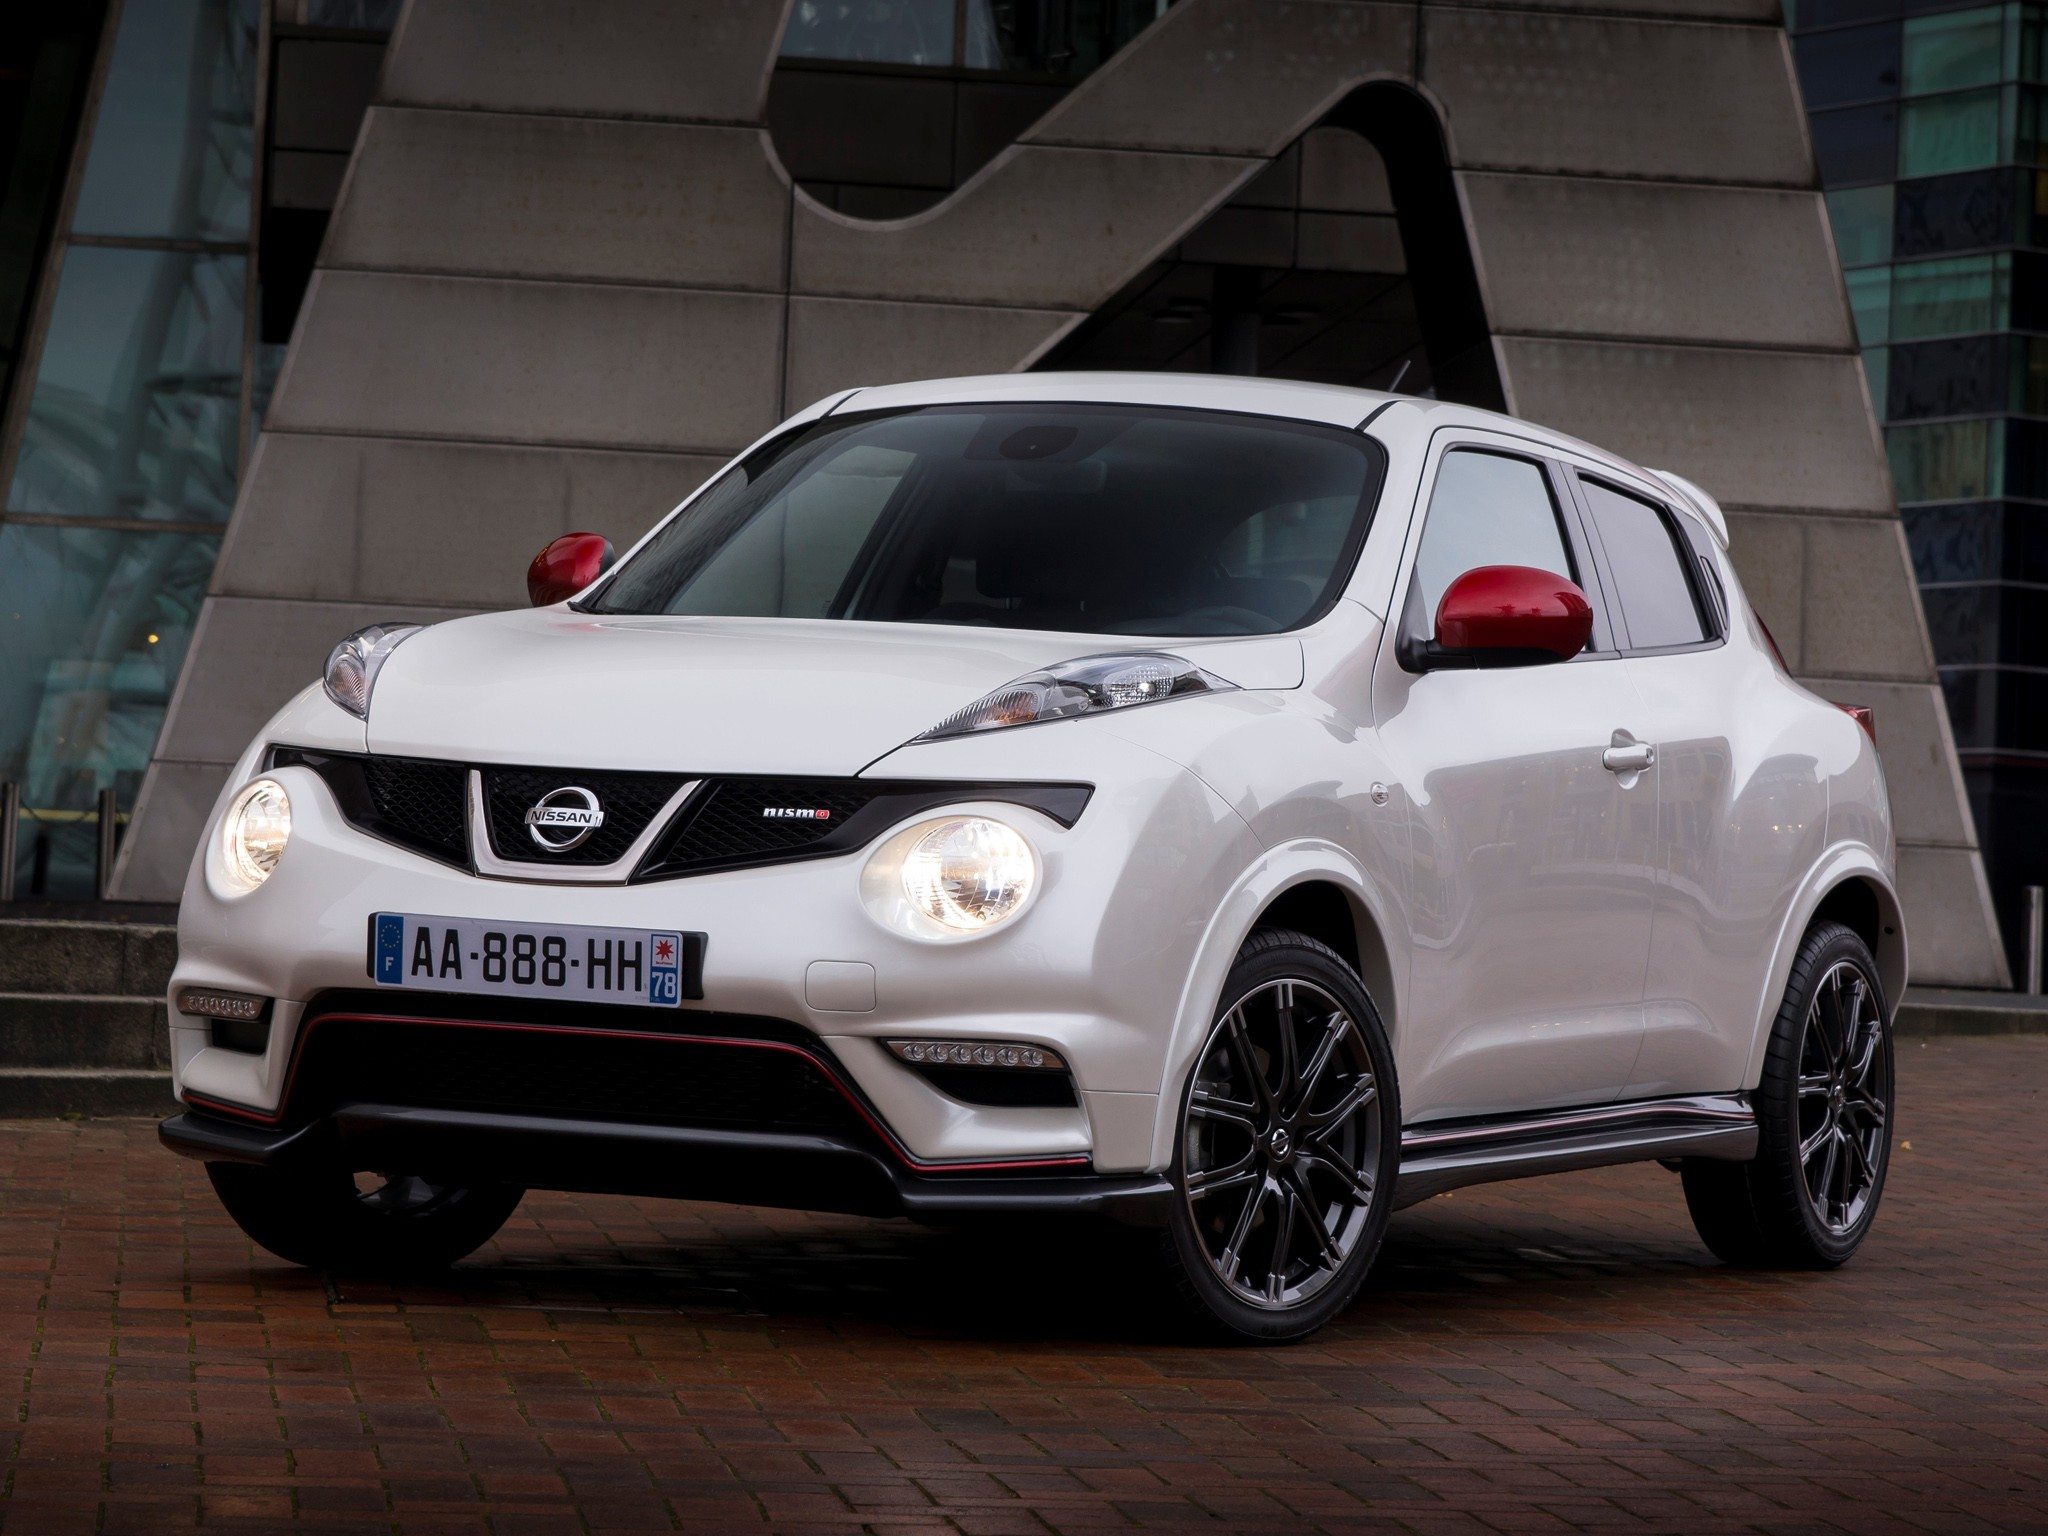 nissan juke nismo specs 2013 2014 2015 2016 2017 2018 autoevolution. Black Bedroom Furniture Sets. Home Design Ideas